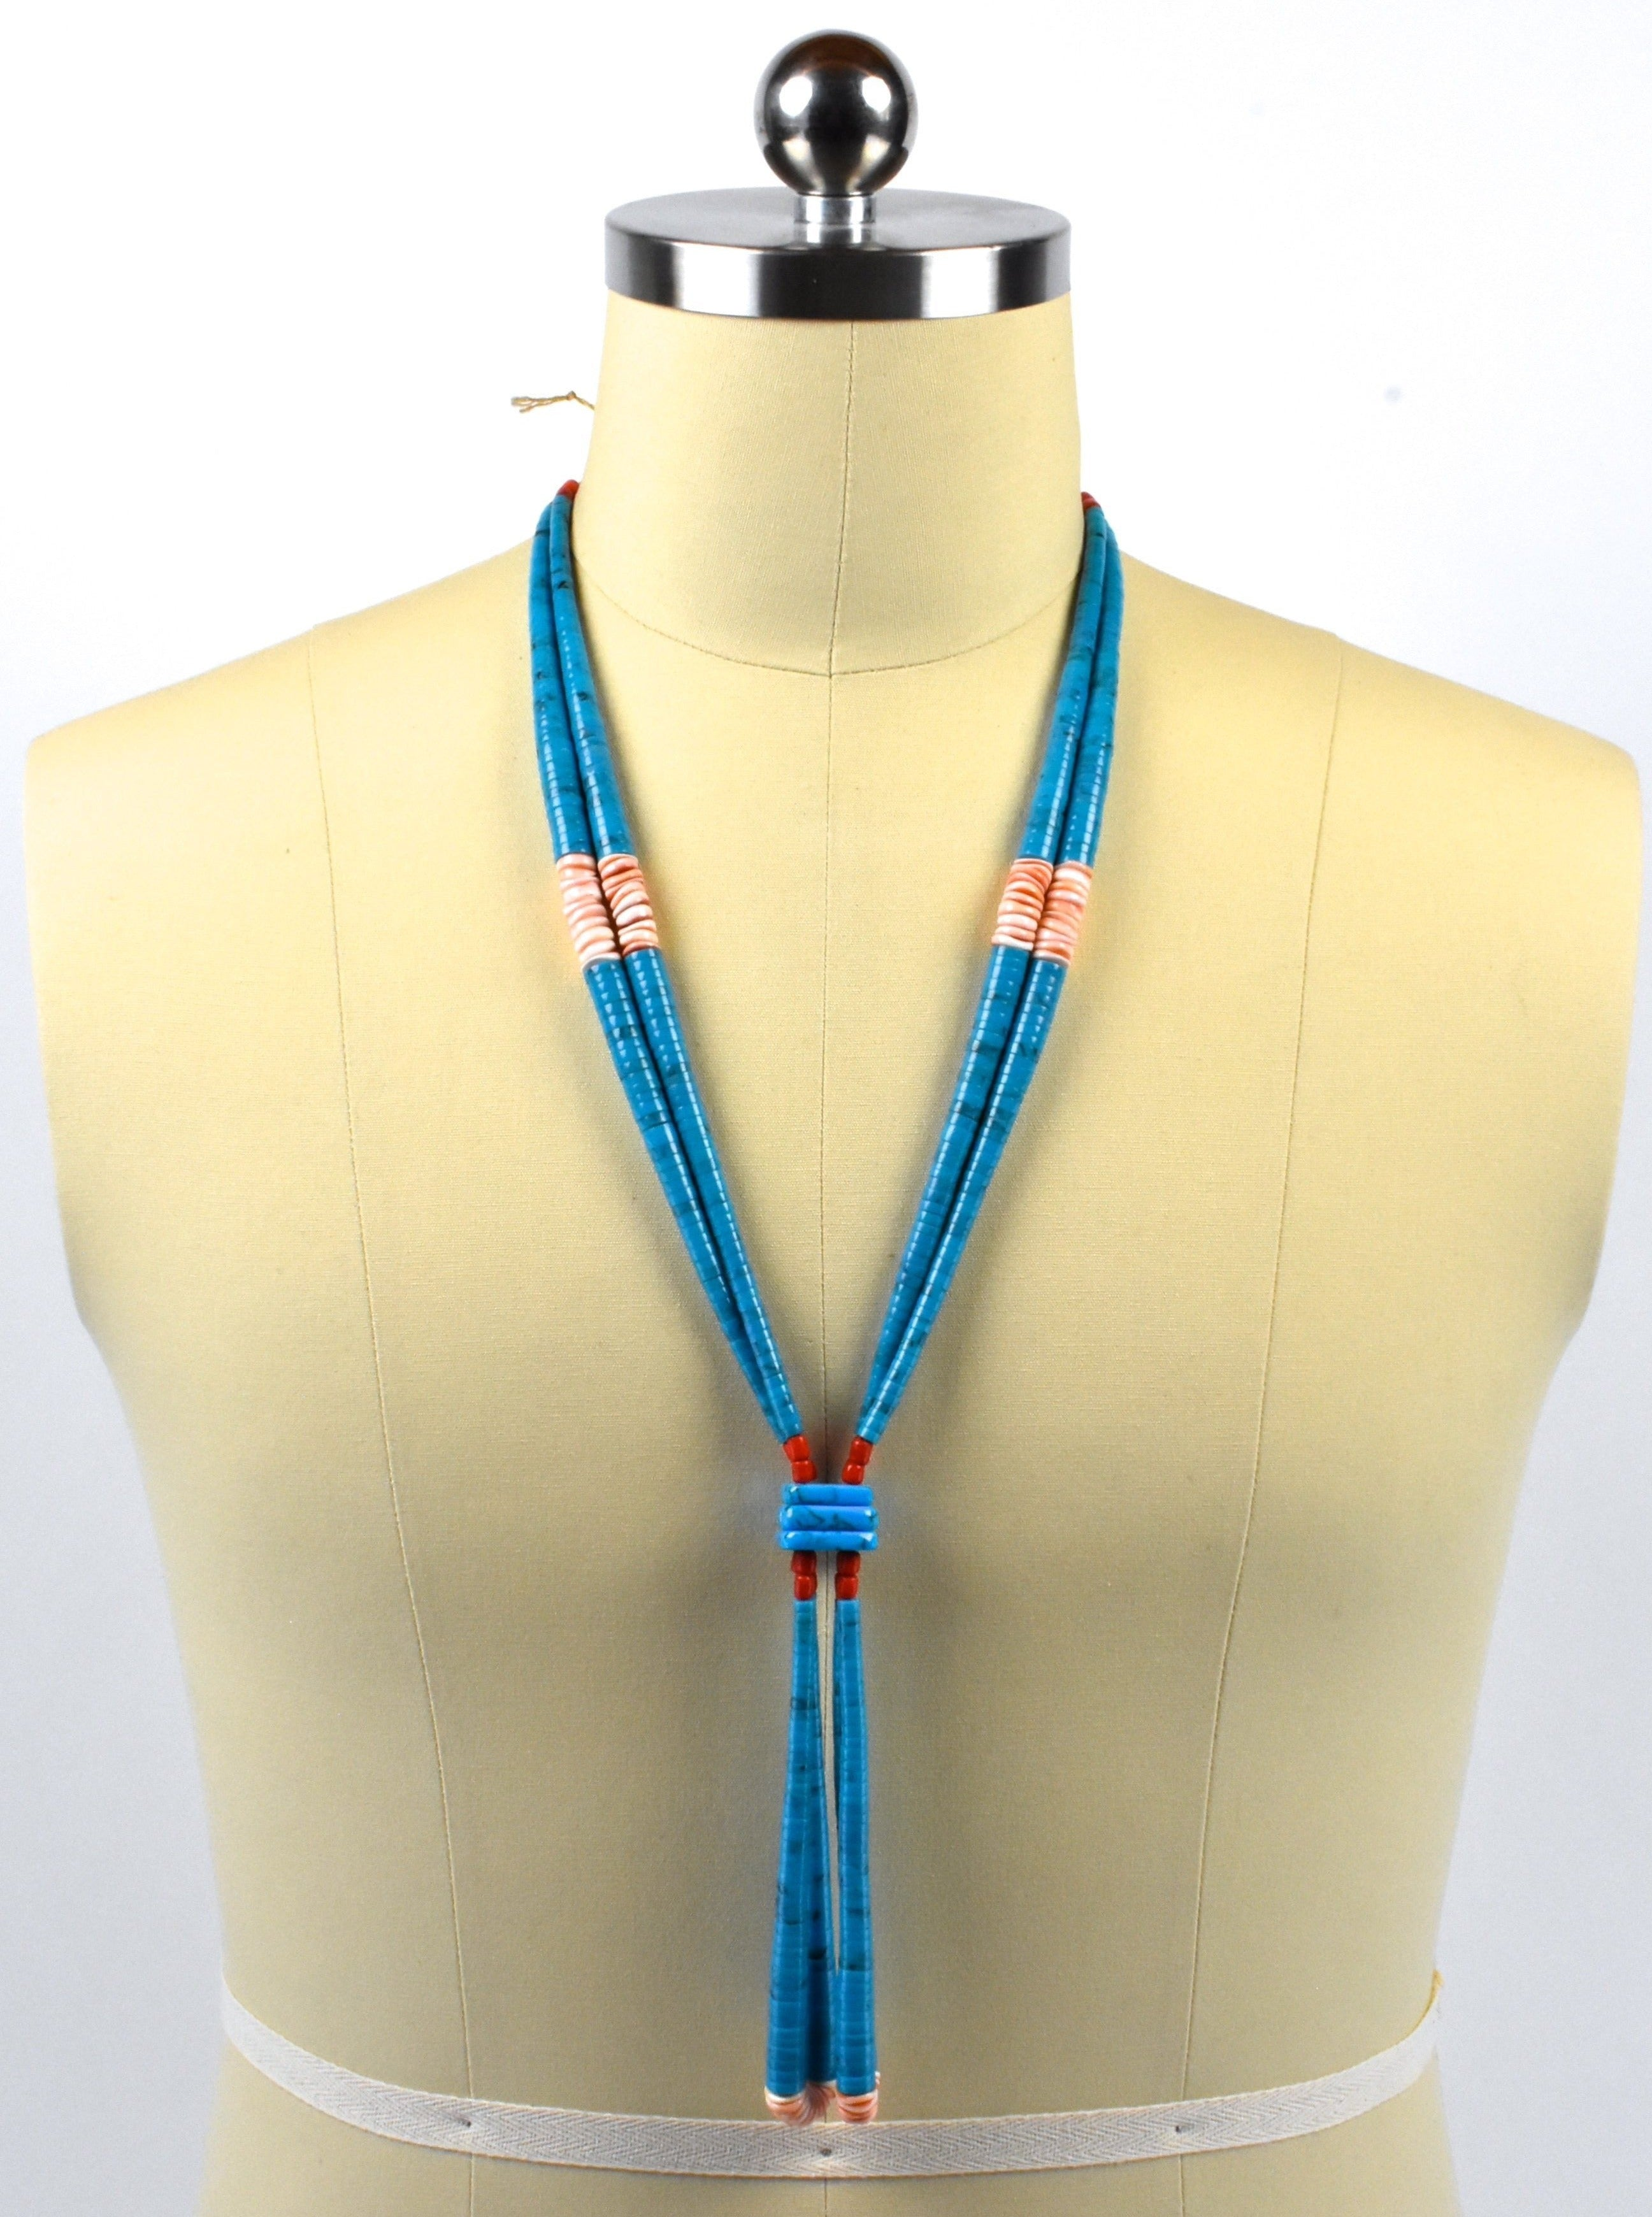 Long Turquoise, Coral Heishi Jacla Necklace with Double Loops